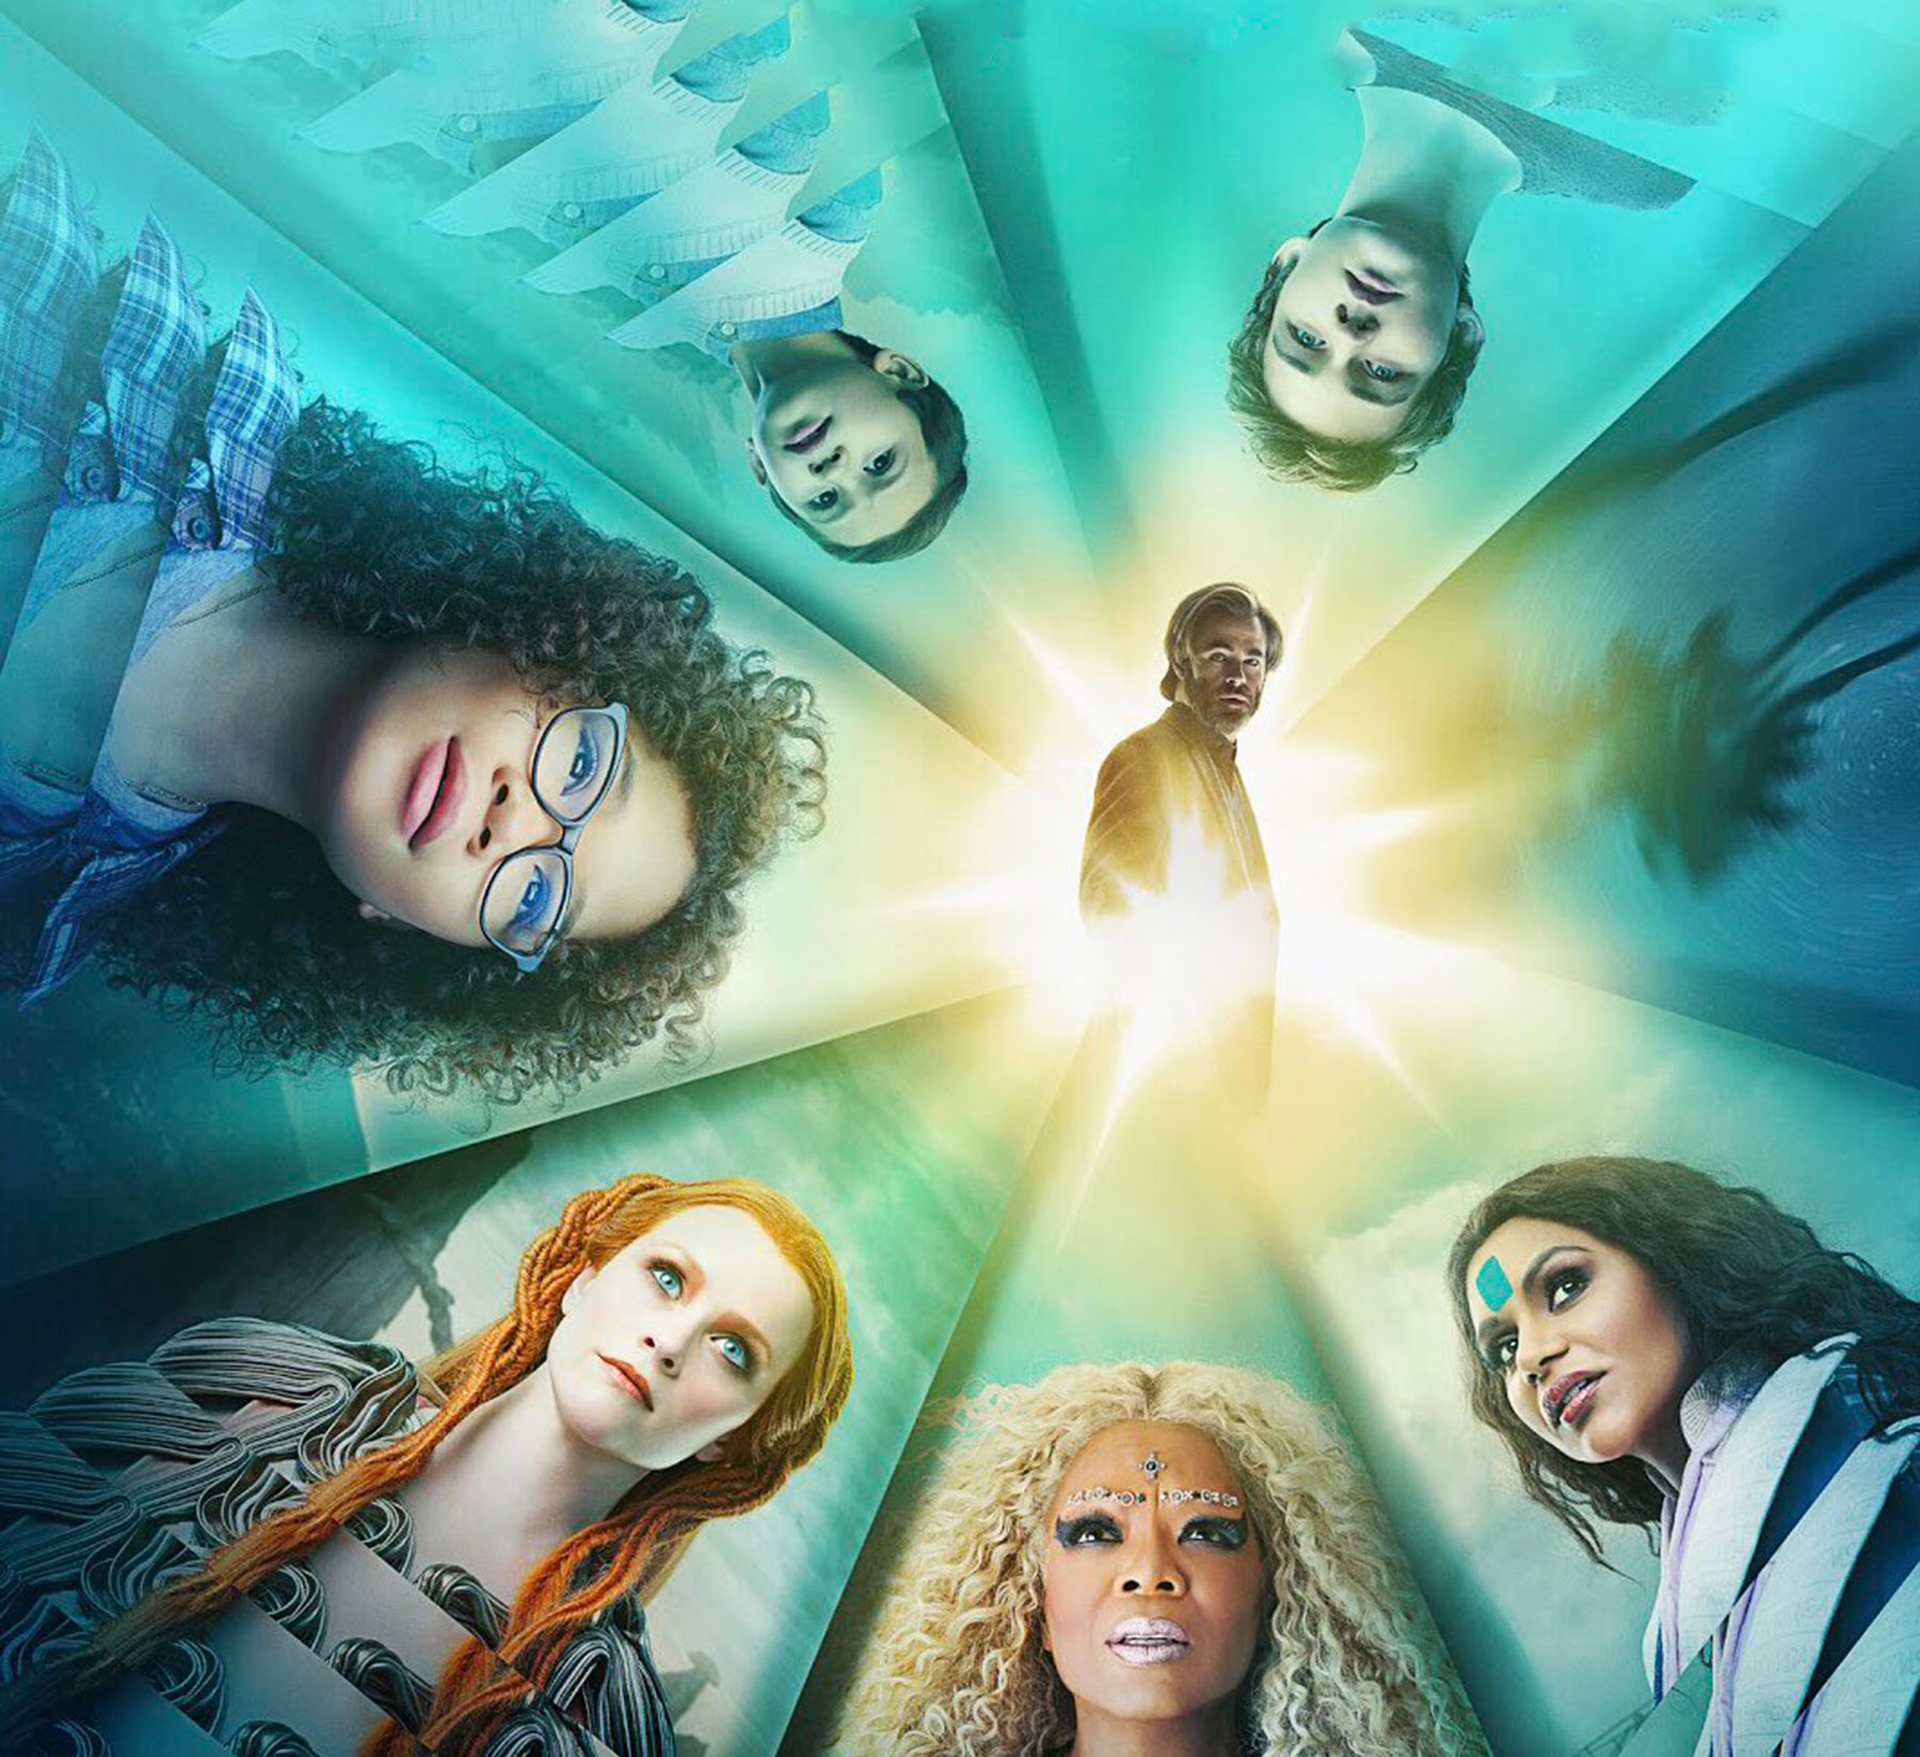 A Wrinkle In Time 2018 Movie, HD Movies, 4k Wallpapers